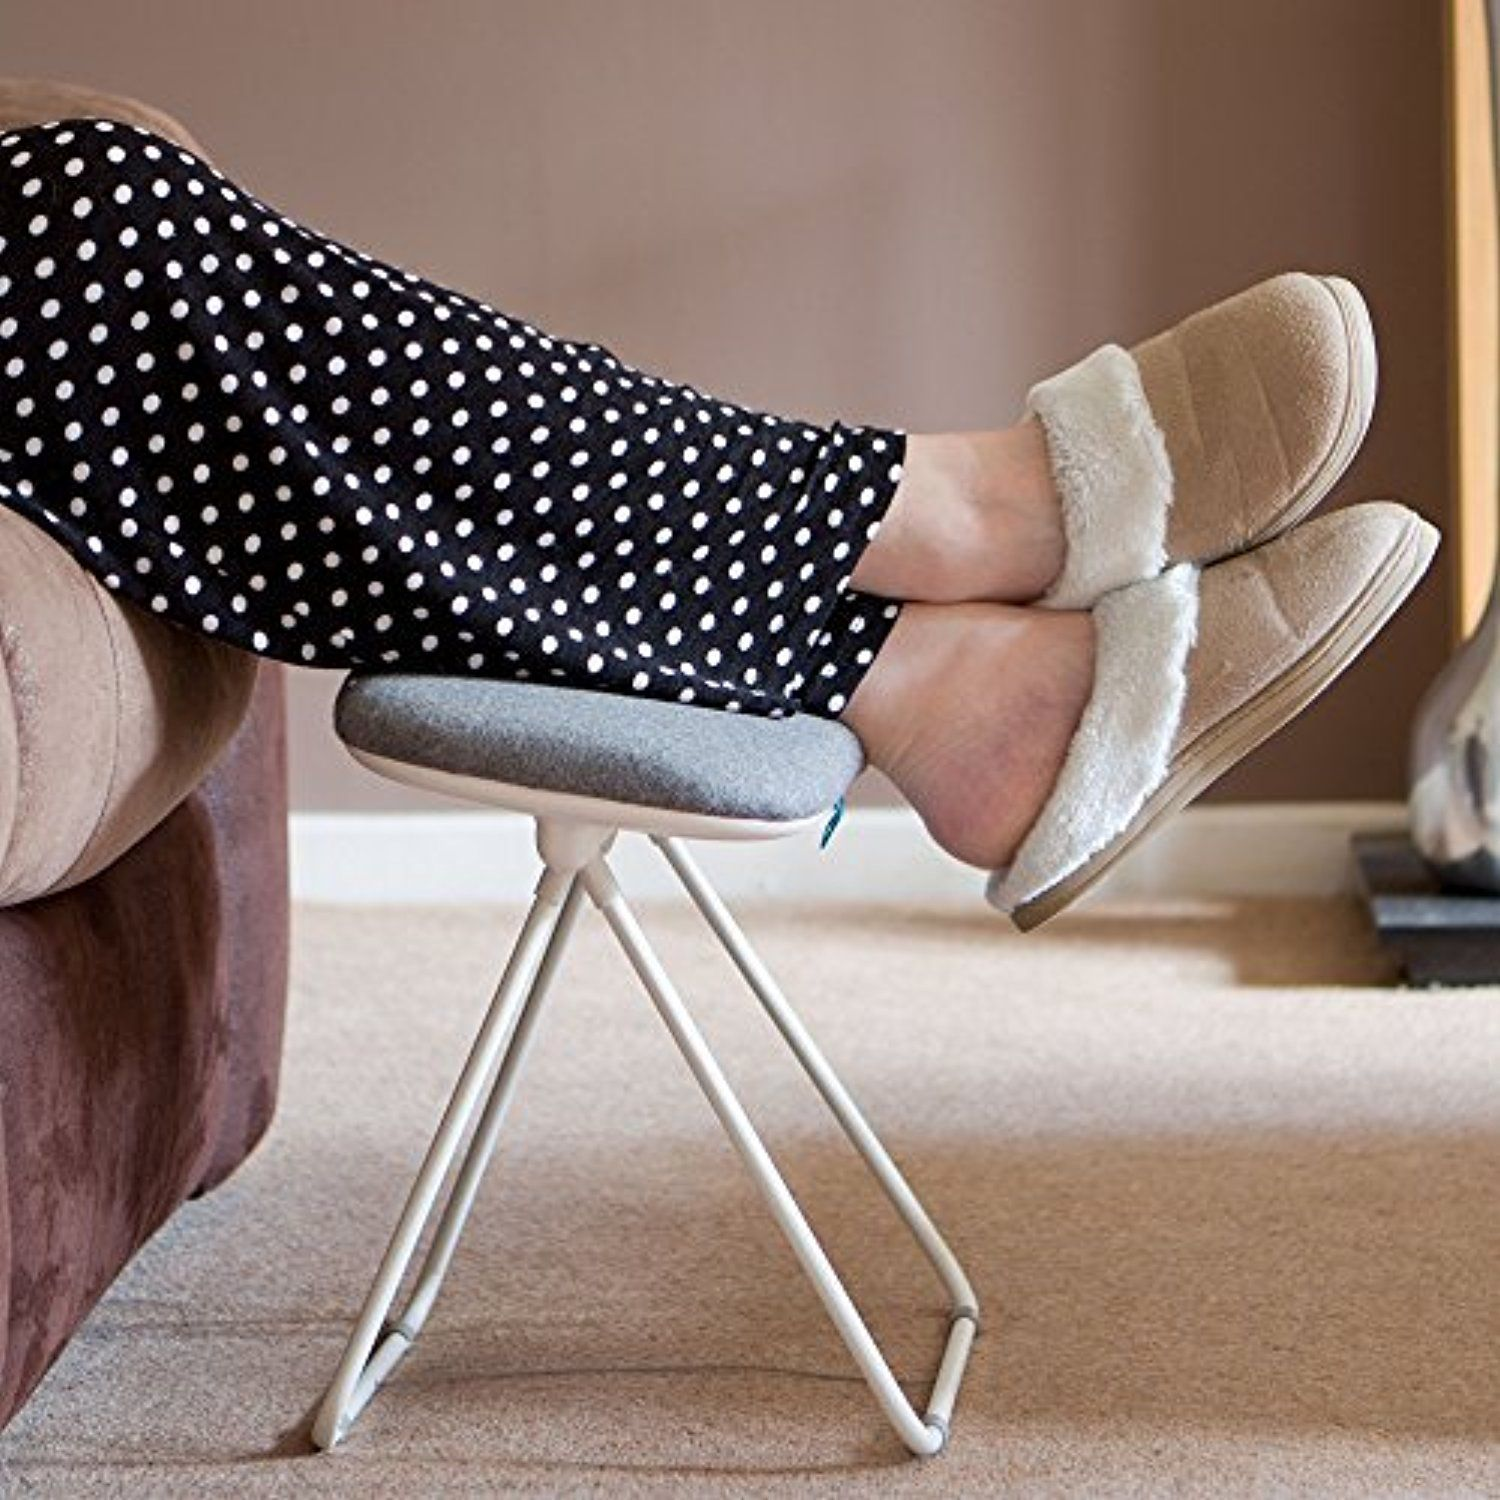 tilting leg rest stool foot rest leg support stool footstool grey footrest foot stool under desk